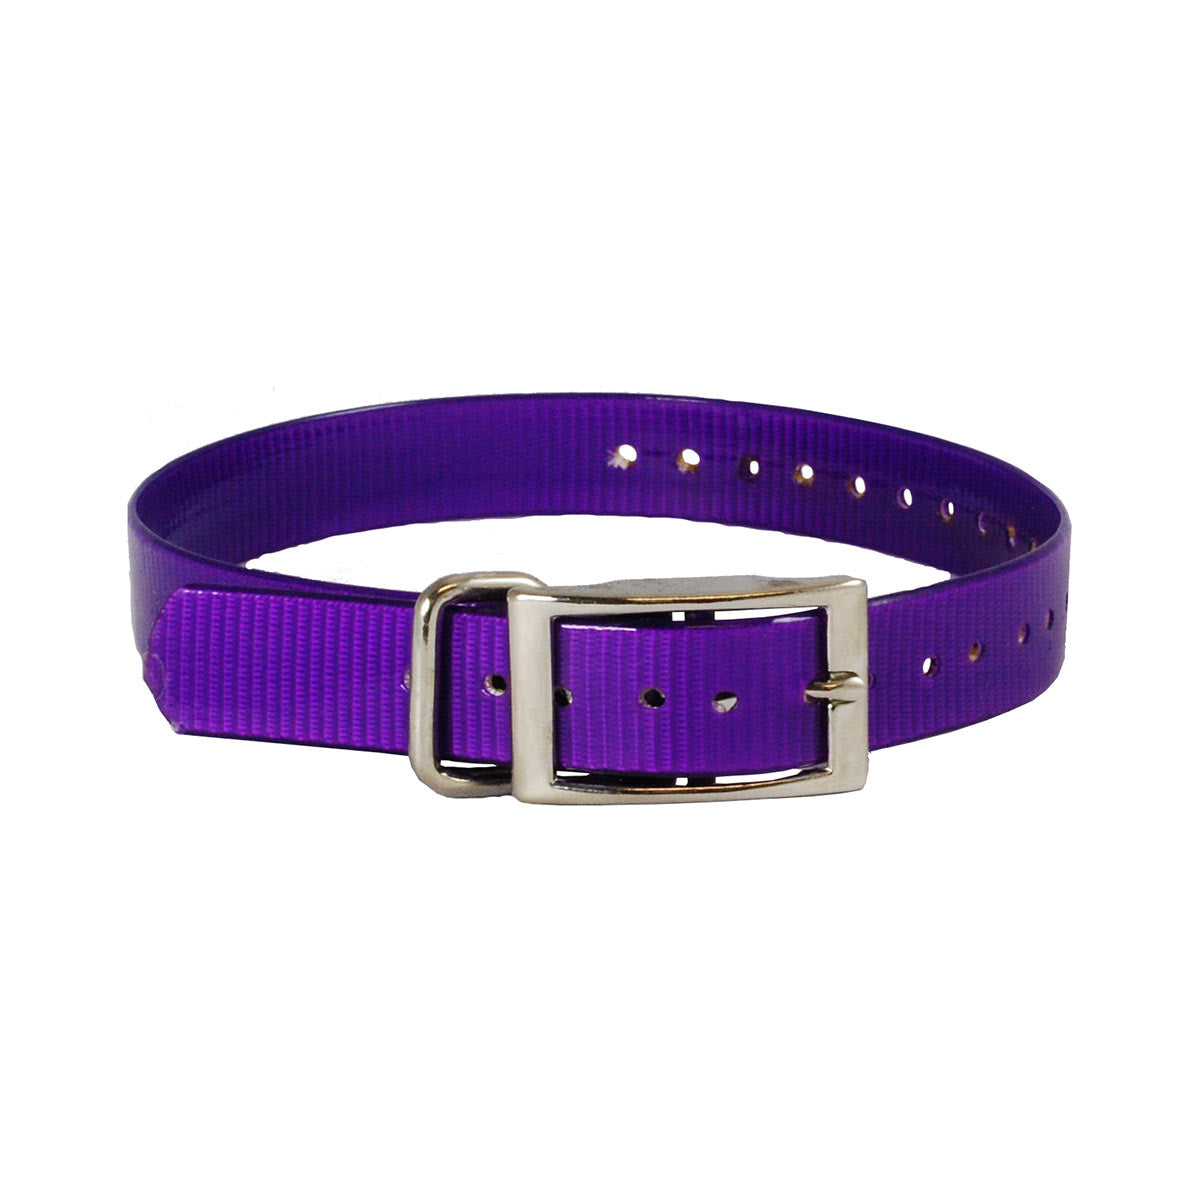 "The Buzzard's Roost Collar Strap 1"" Purple 1"" x 24"" Dog GPS Tracking - London the Local"